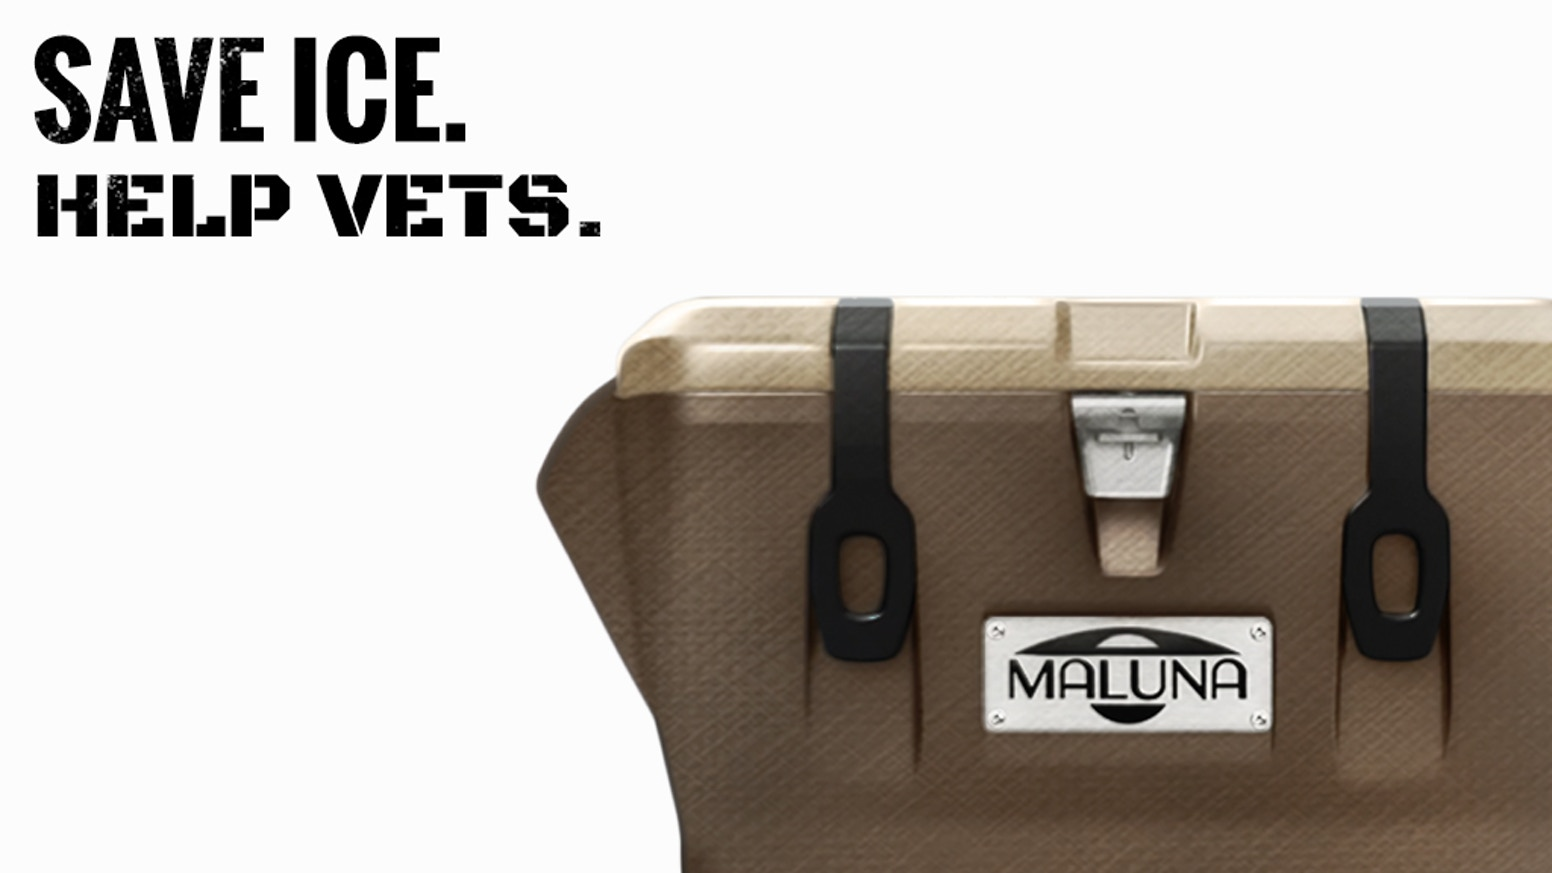 The Maluna Combat 22 holds ice 23% longer and creates coolers for veterans so they can connect with the outdoors and with each other.